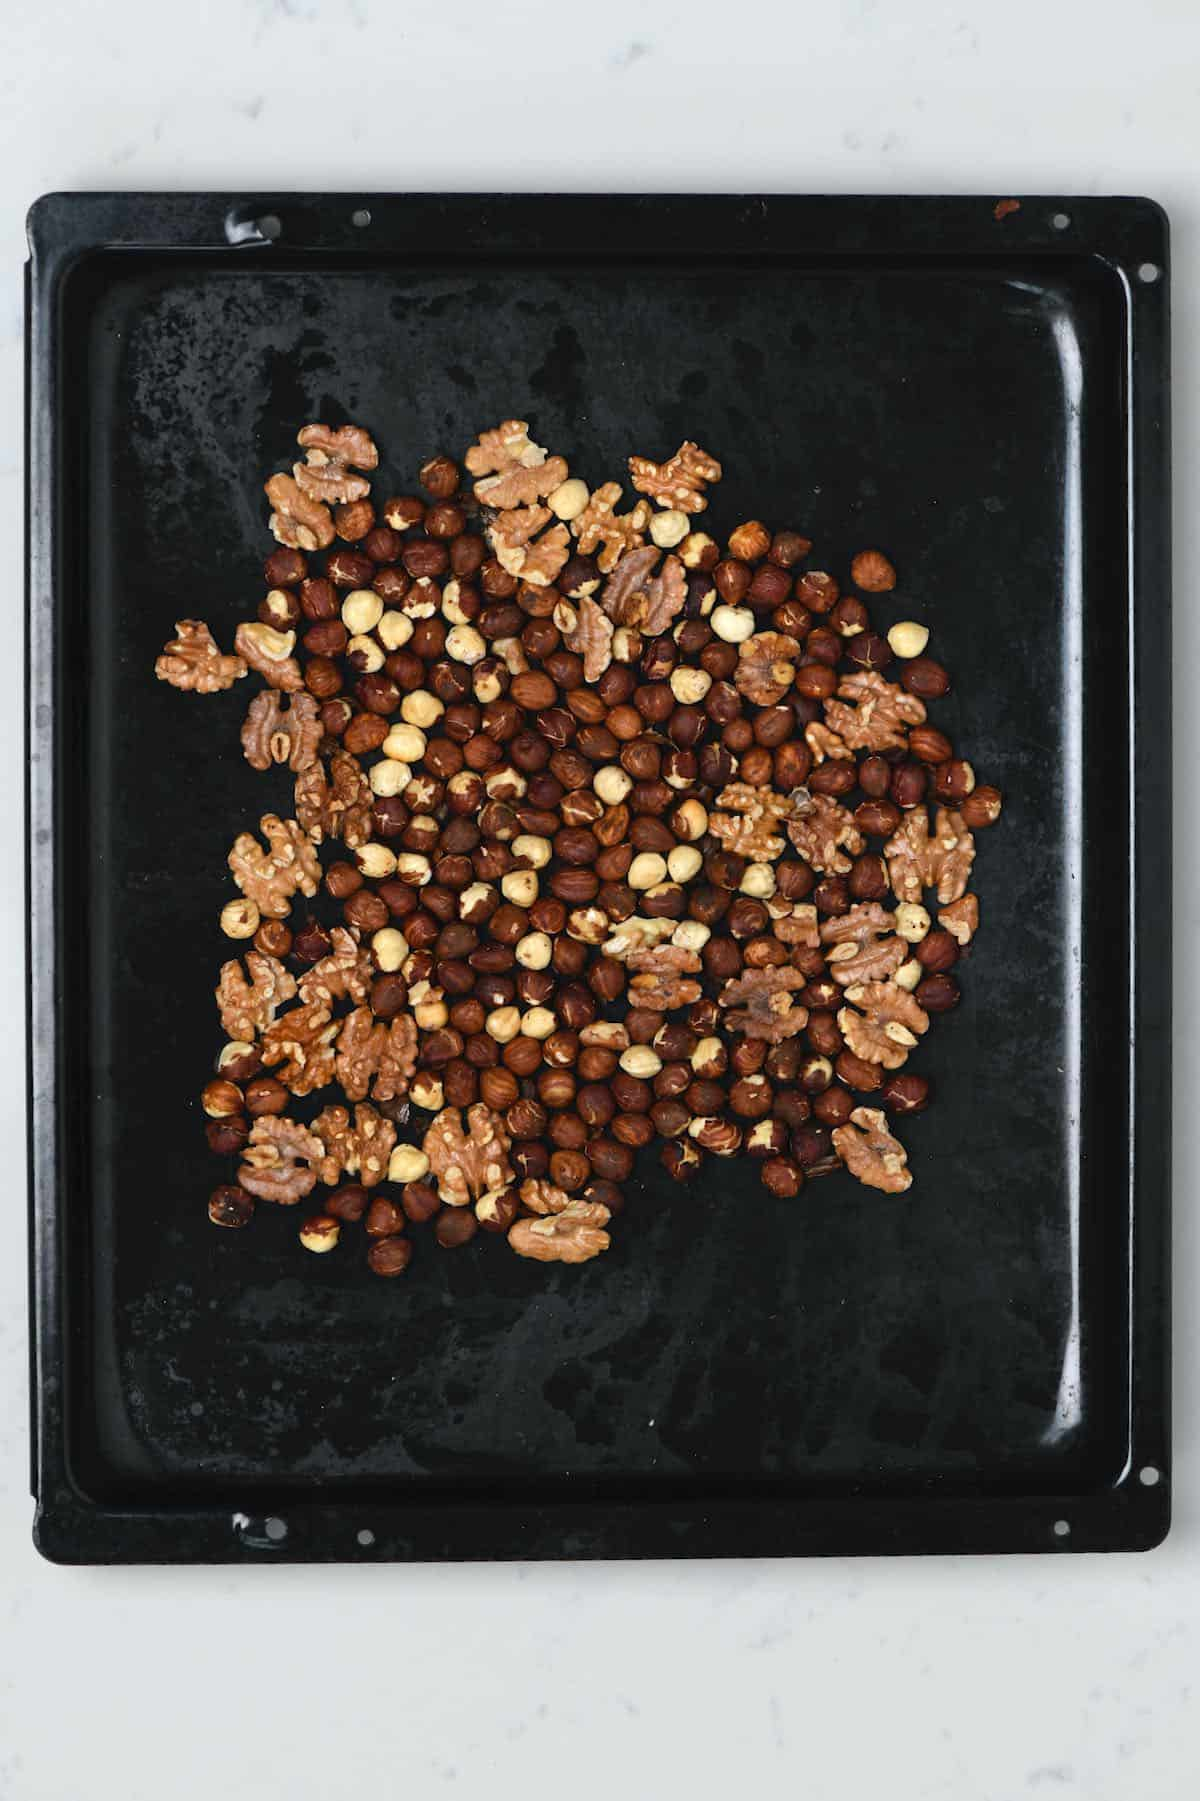 Roasted nuts in a tray